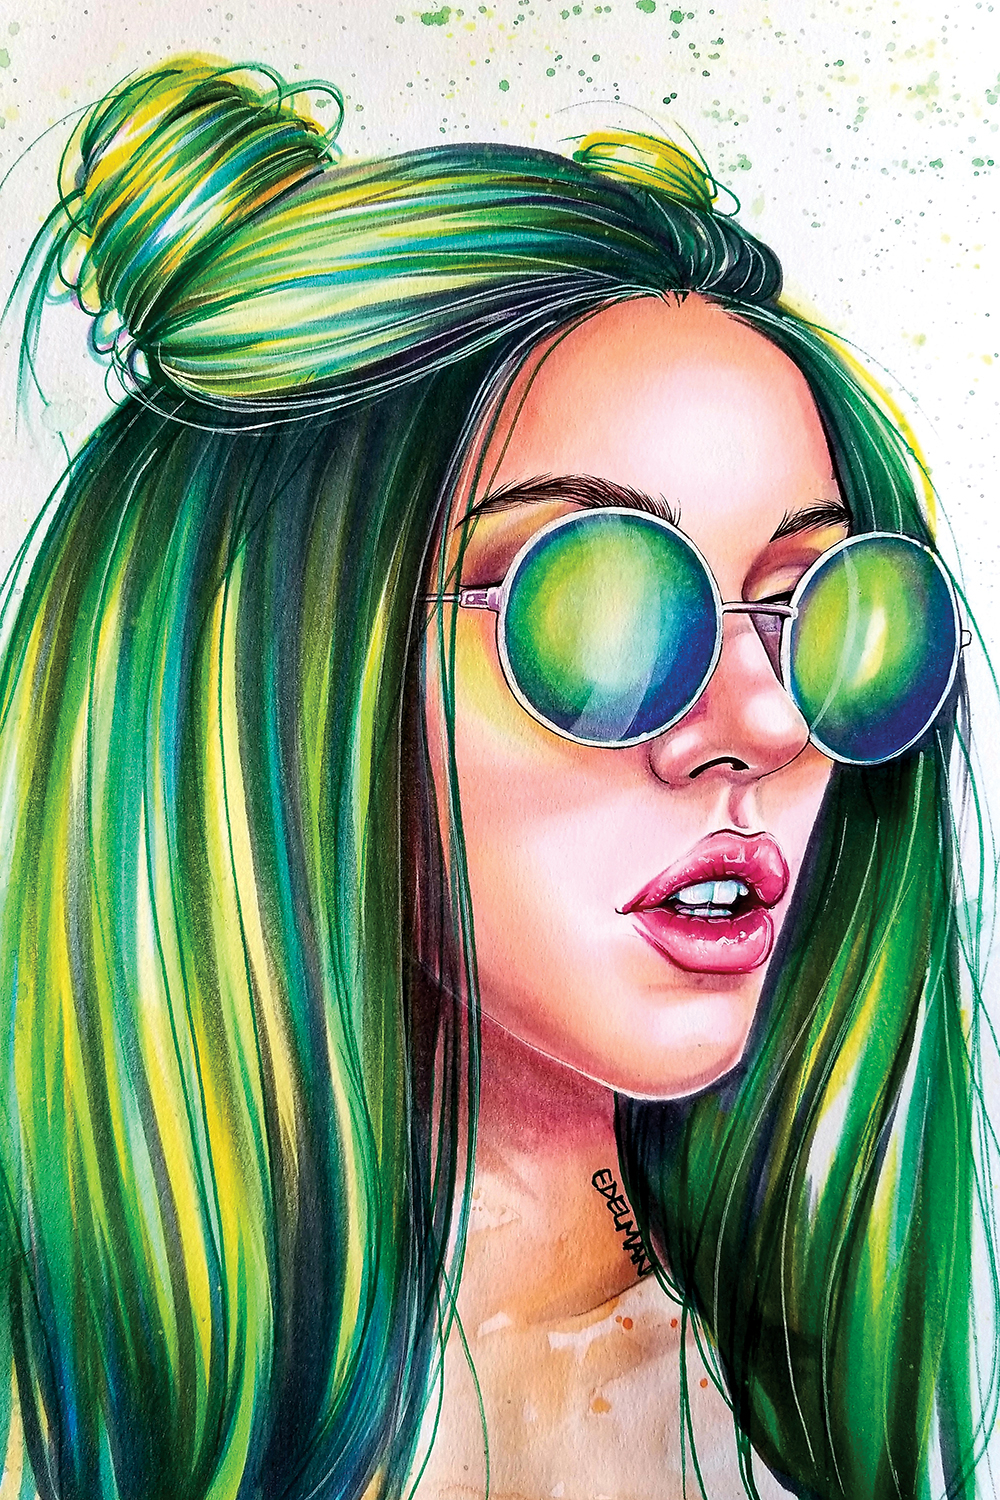 Illustration of woman with green tinted sunglasses and long green hair tied into buns